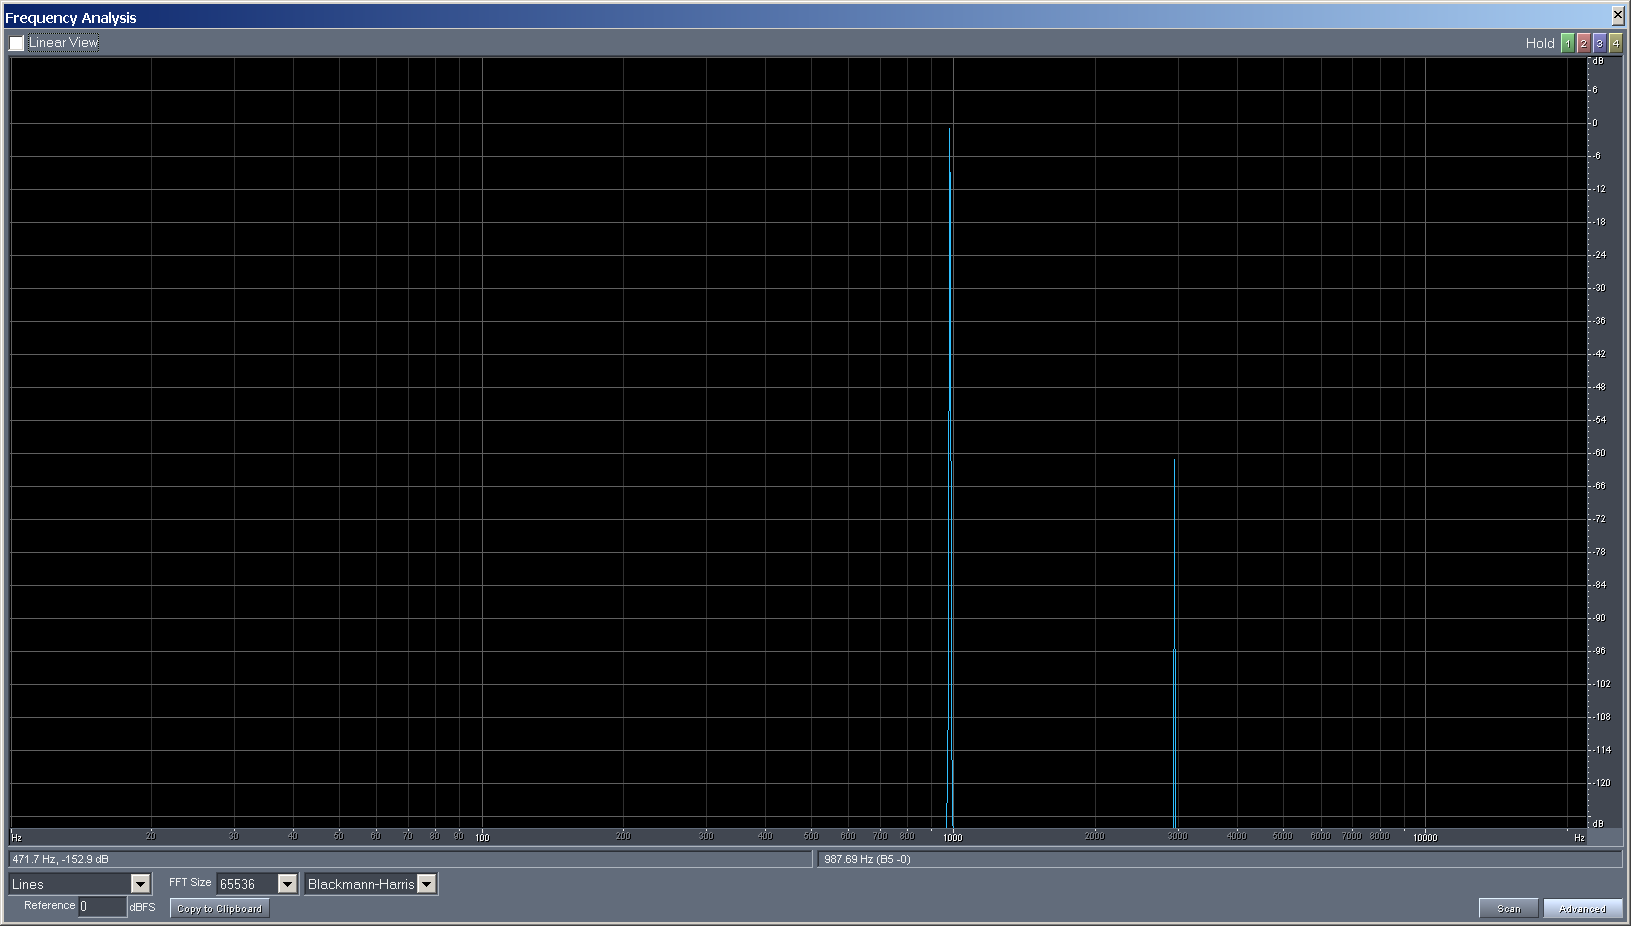 B5 with 0_1pct 3rd harmonic THD+N FFT.png